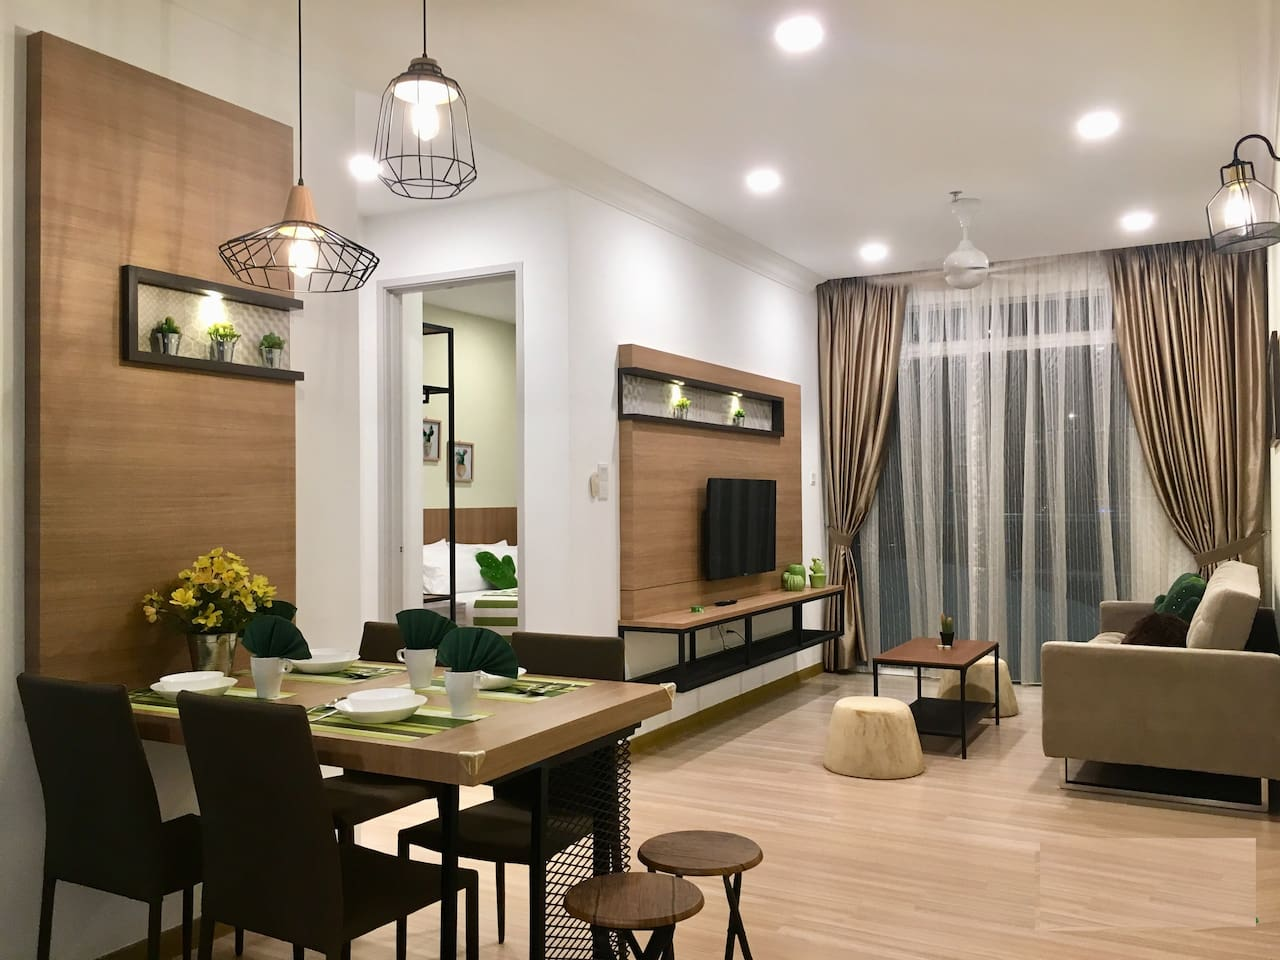 Newly renovated unit, with cafe style setup dining area and woody feel decorated living room